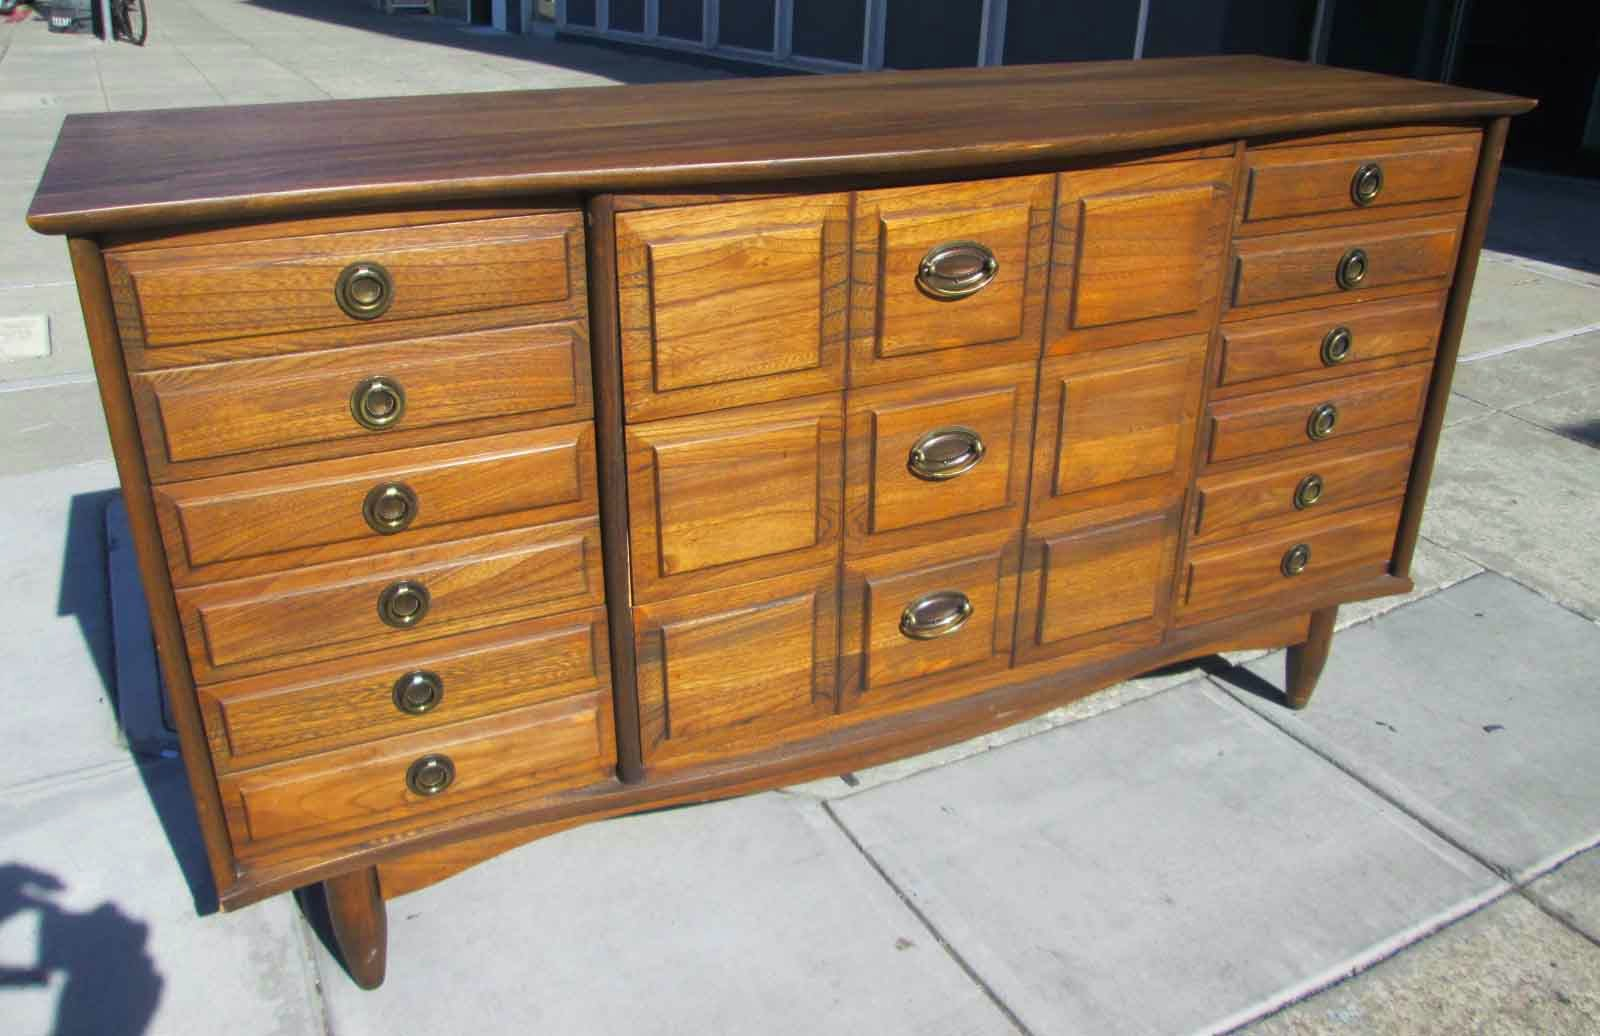 Sold La Period Furniture Company Dresser 175